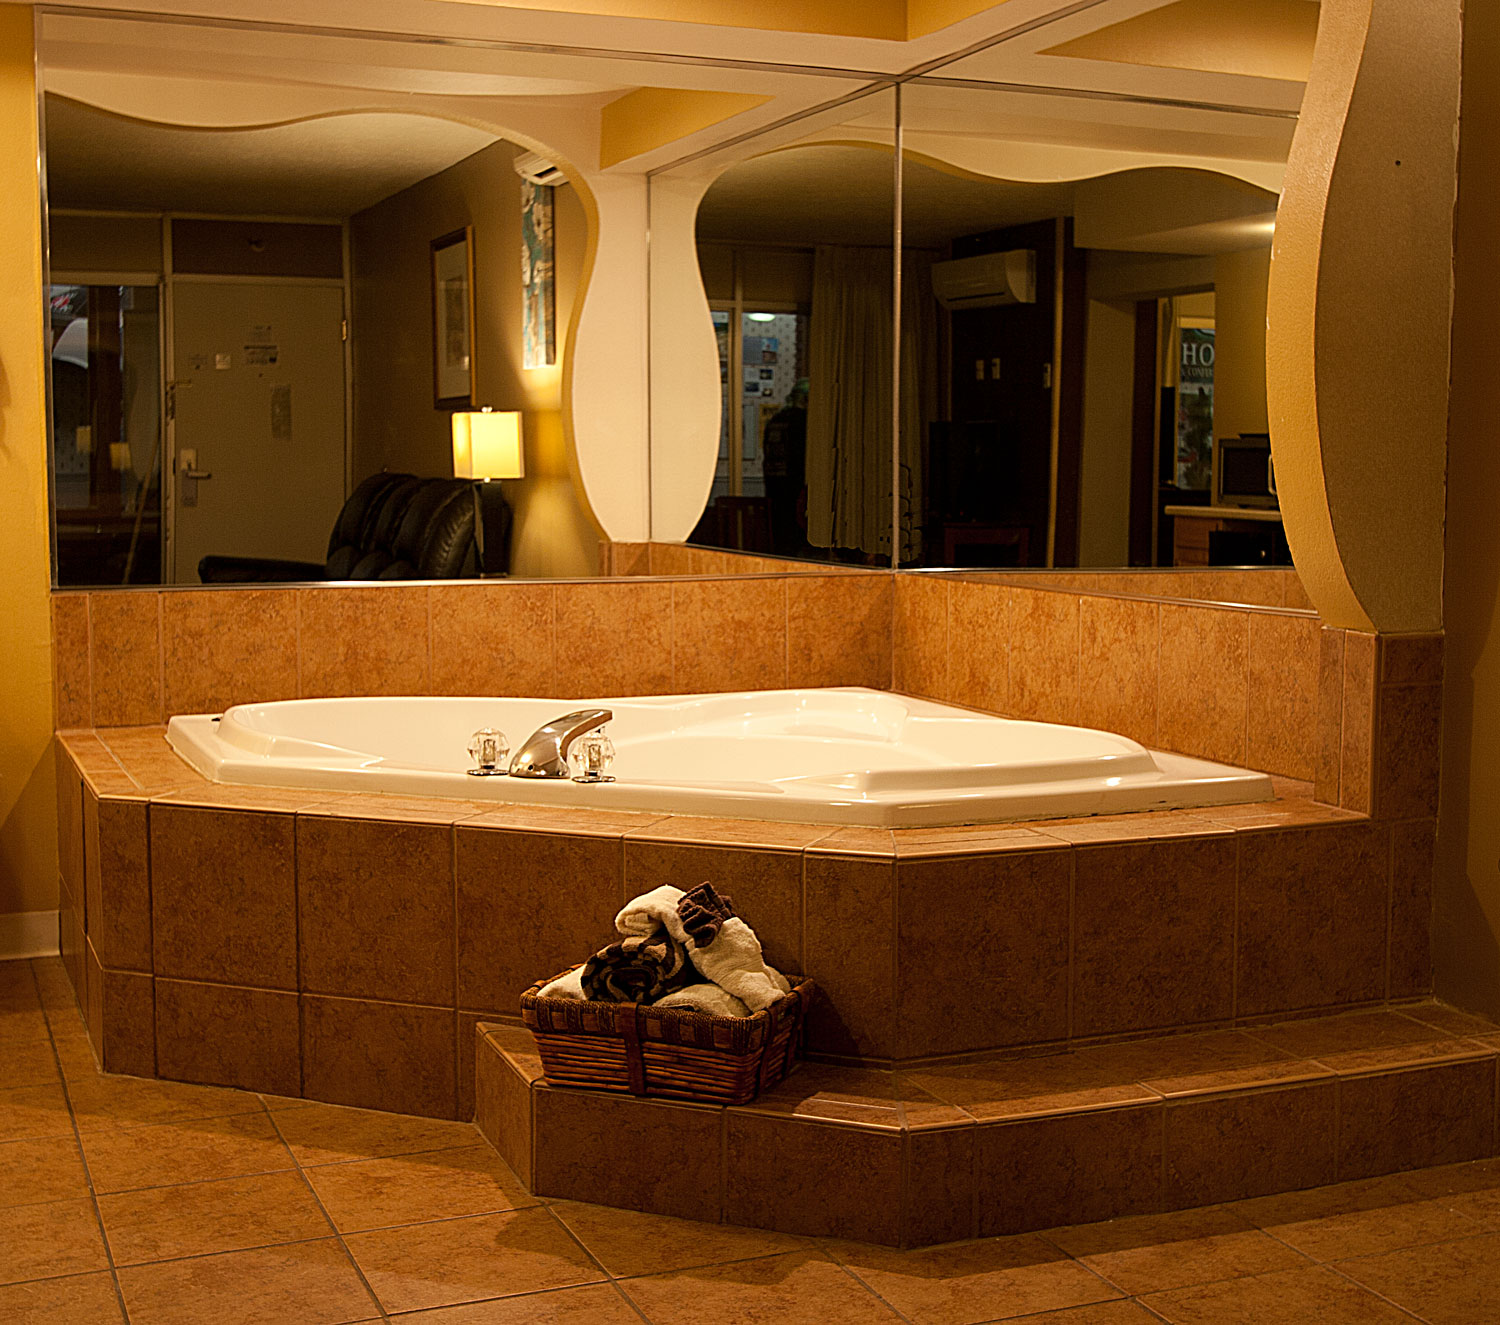 Hotel Rooms With Hot Tubs Wales